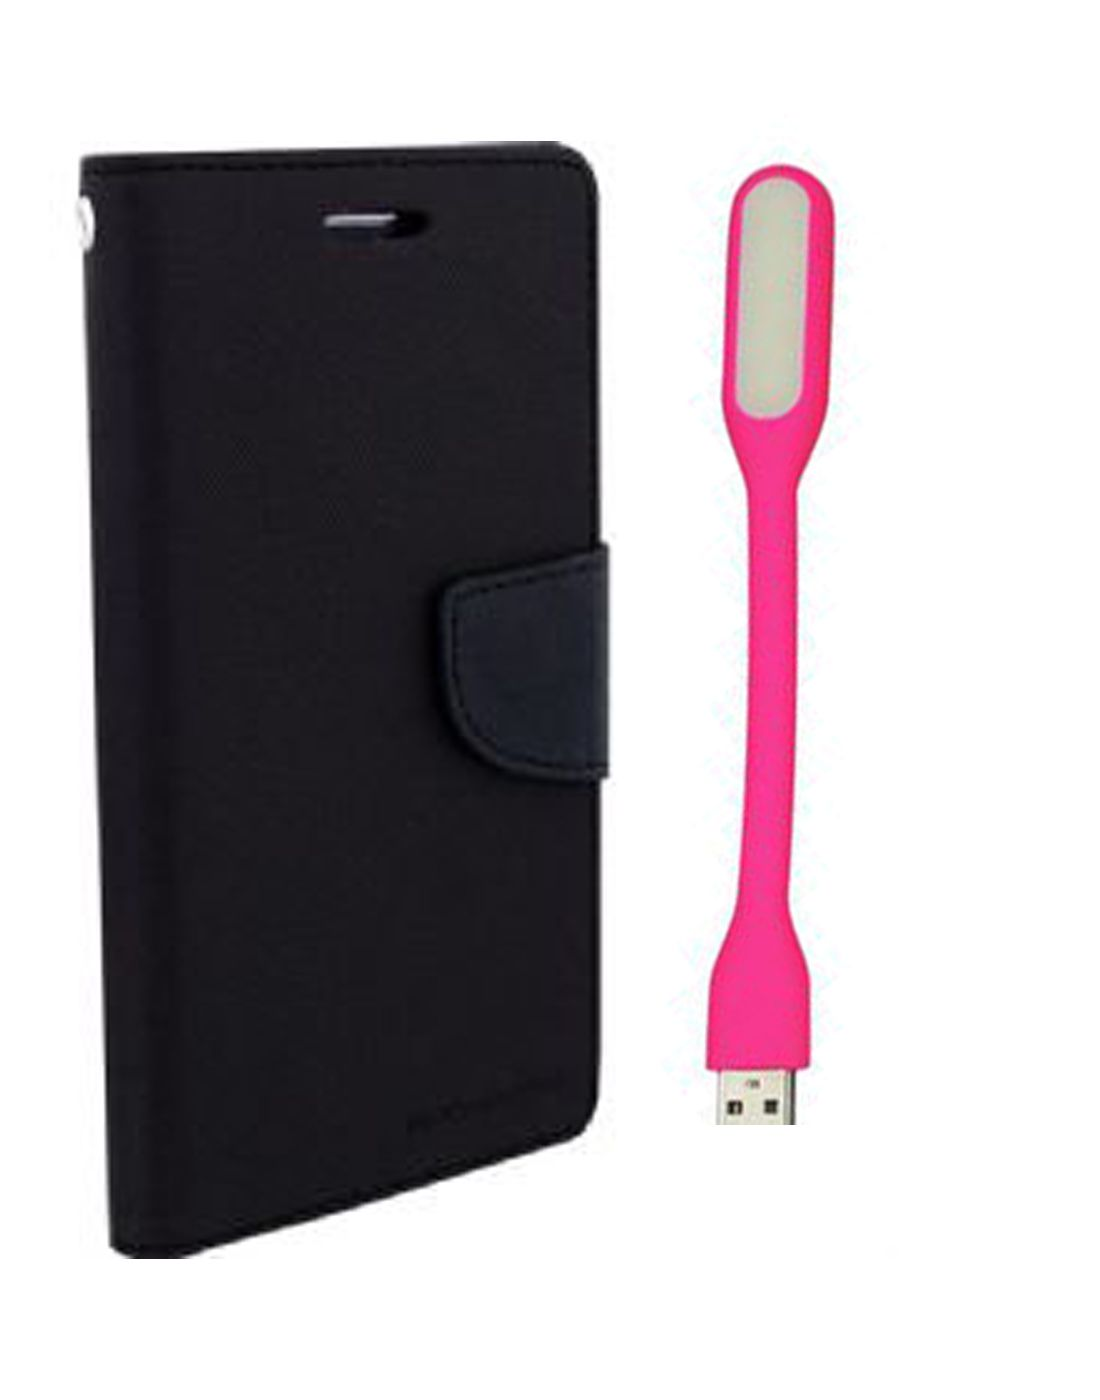 Wallet Flip Case Back Cover For Samsung E5 -(Black) + Flexible Mini LED Stick Lamp Light By Style Crome